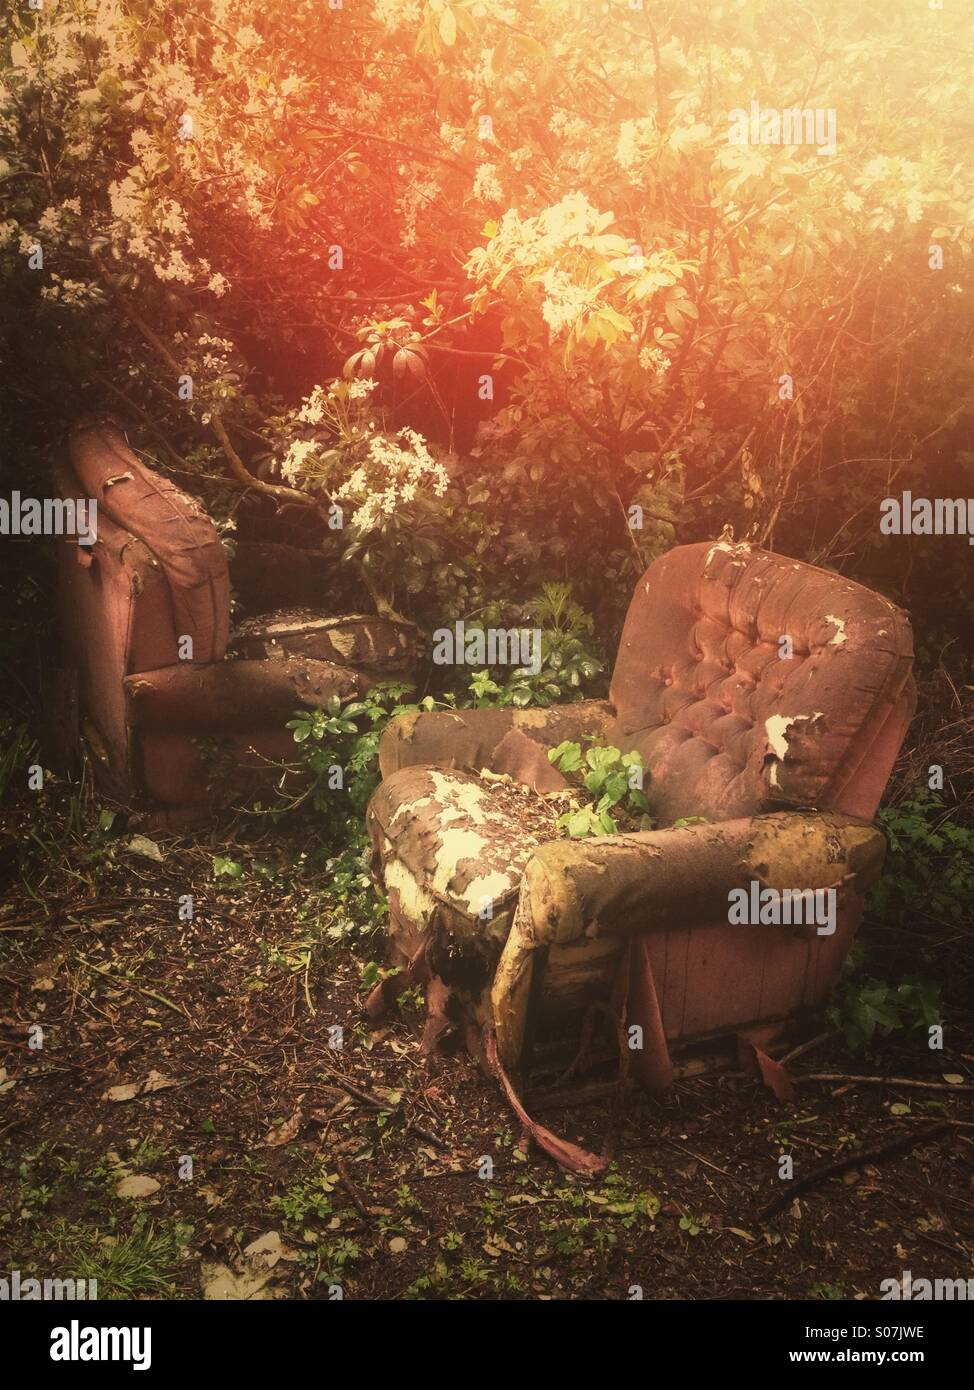 Decaying couches - Stock Image